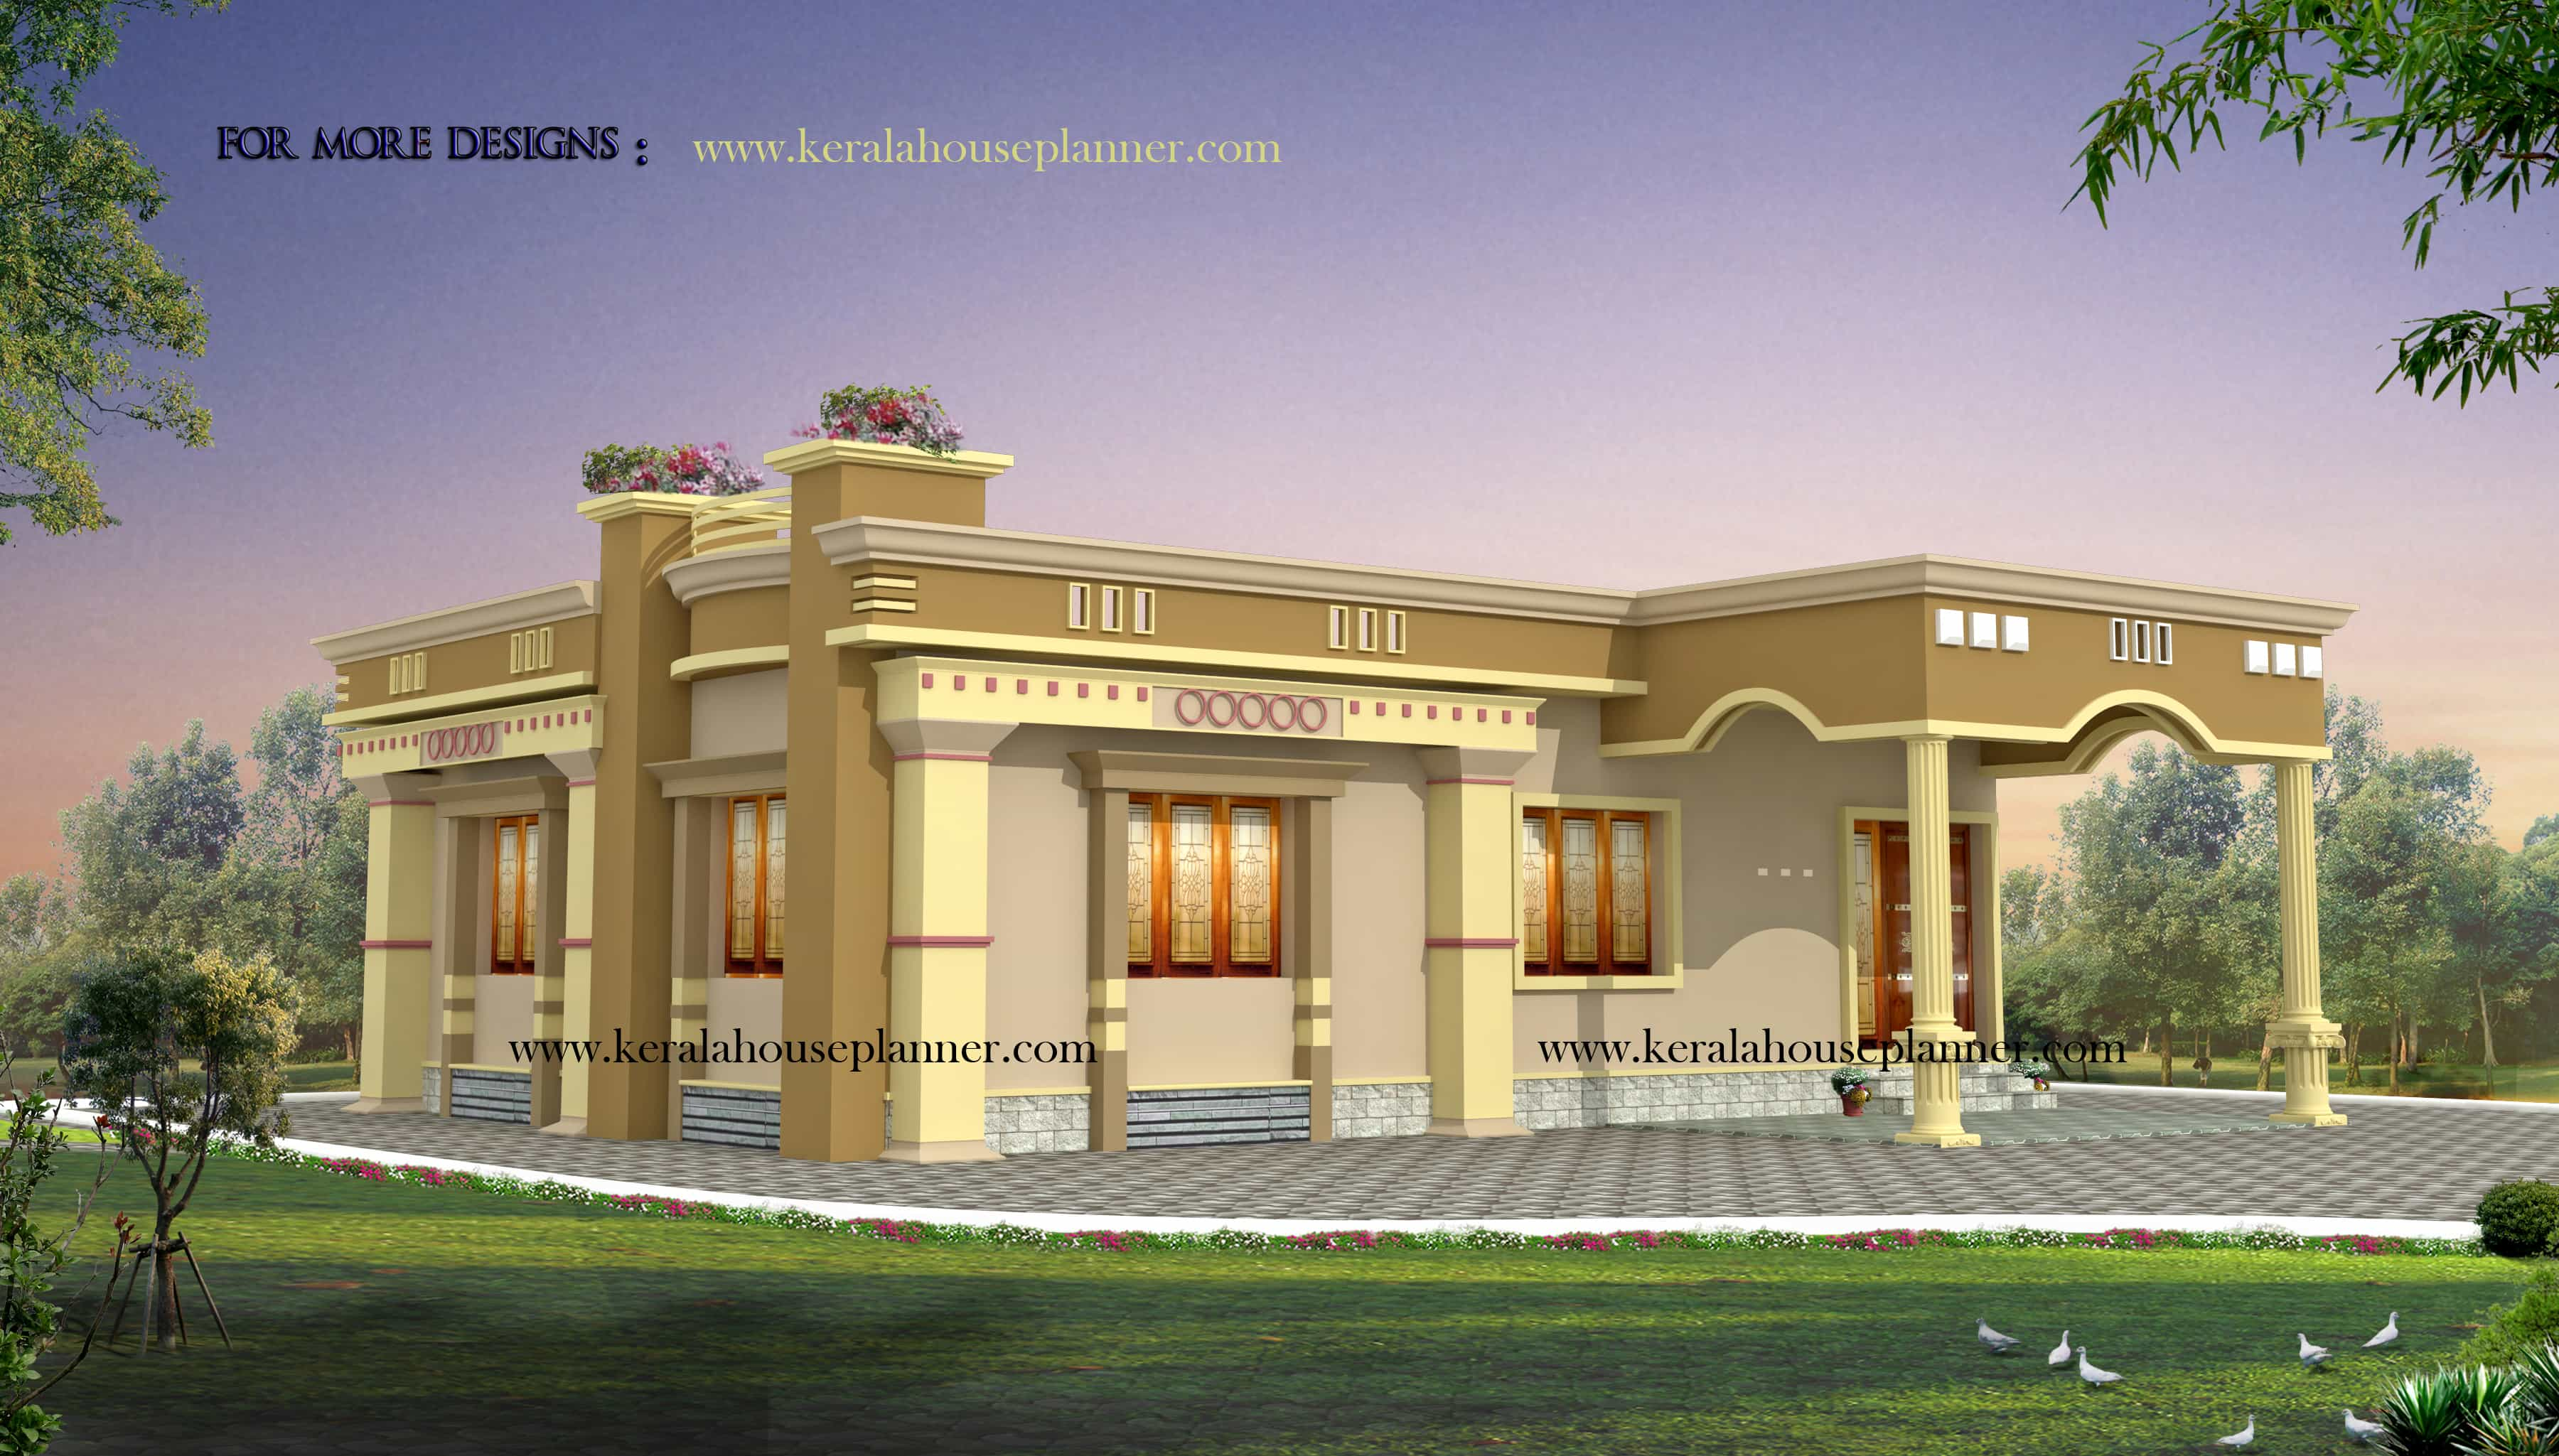 Kerala house plans 1200 sq ft with photos khp for House plans in kerala